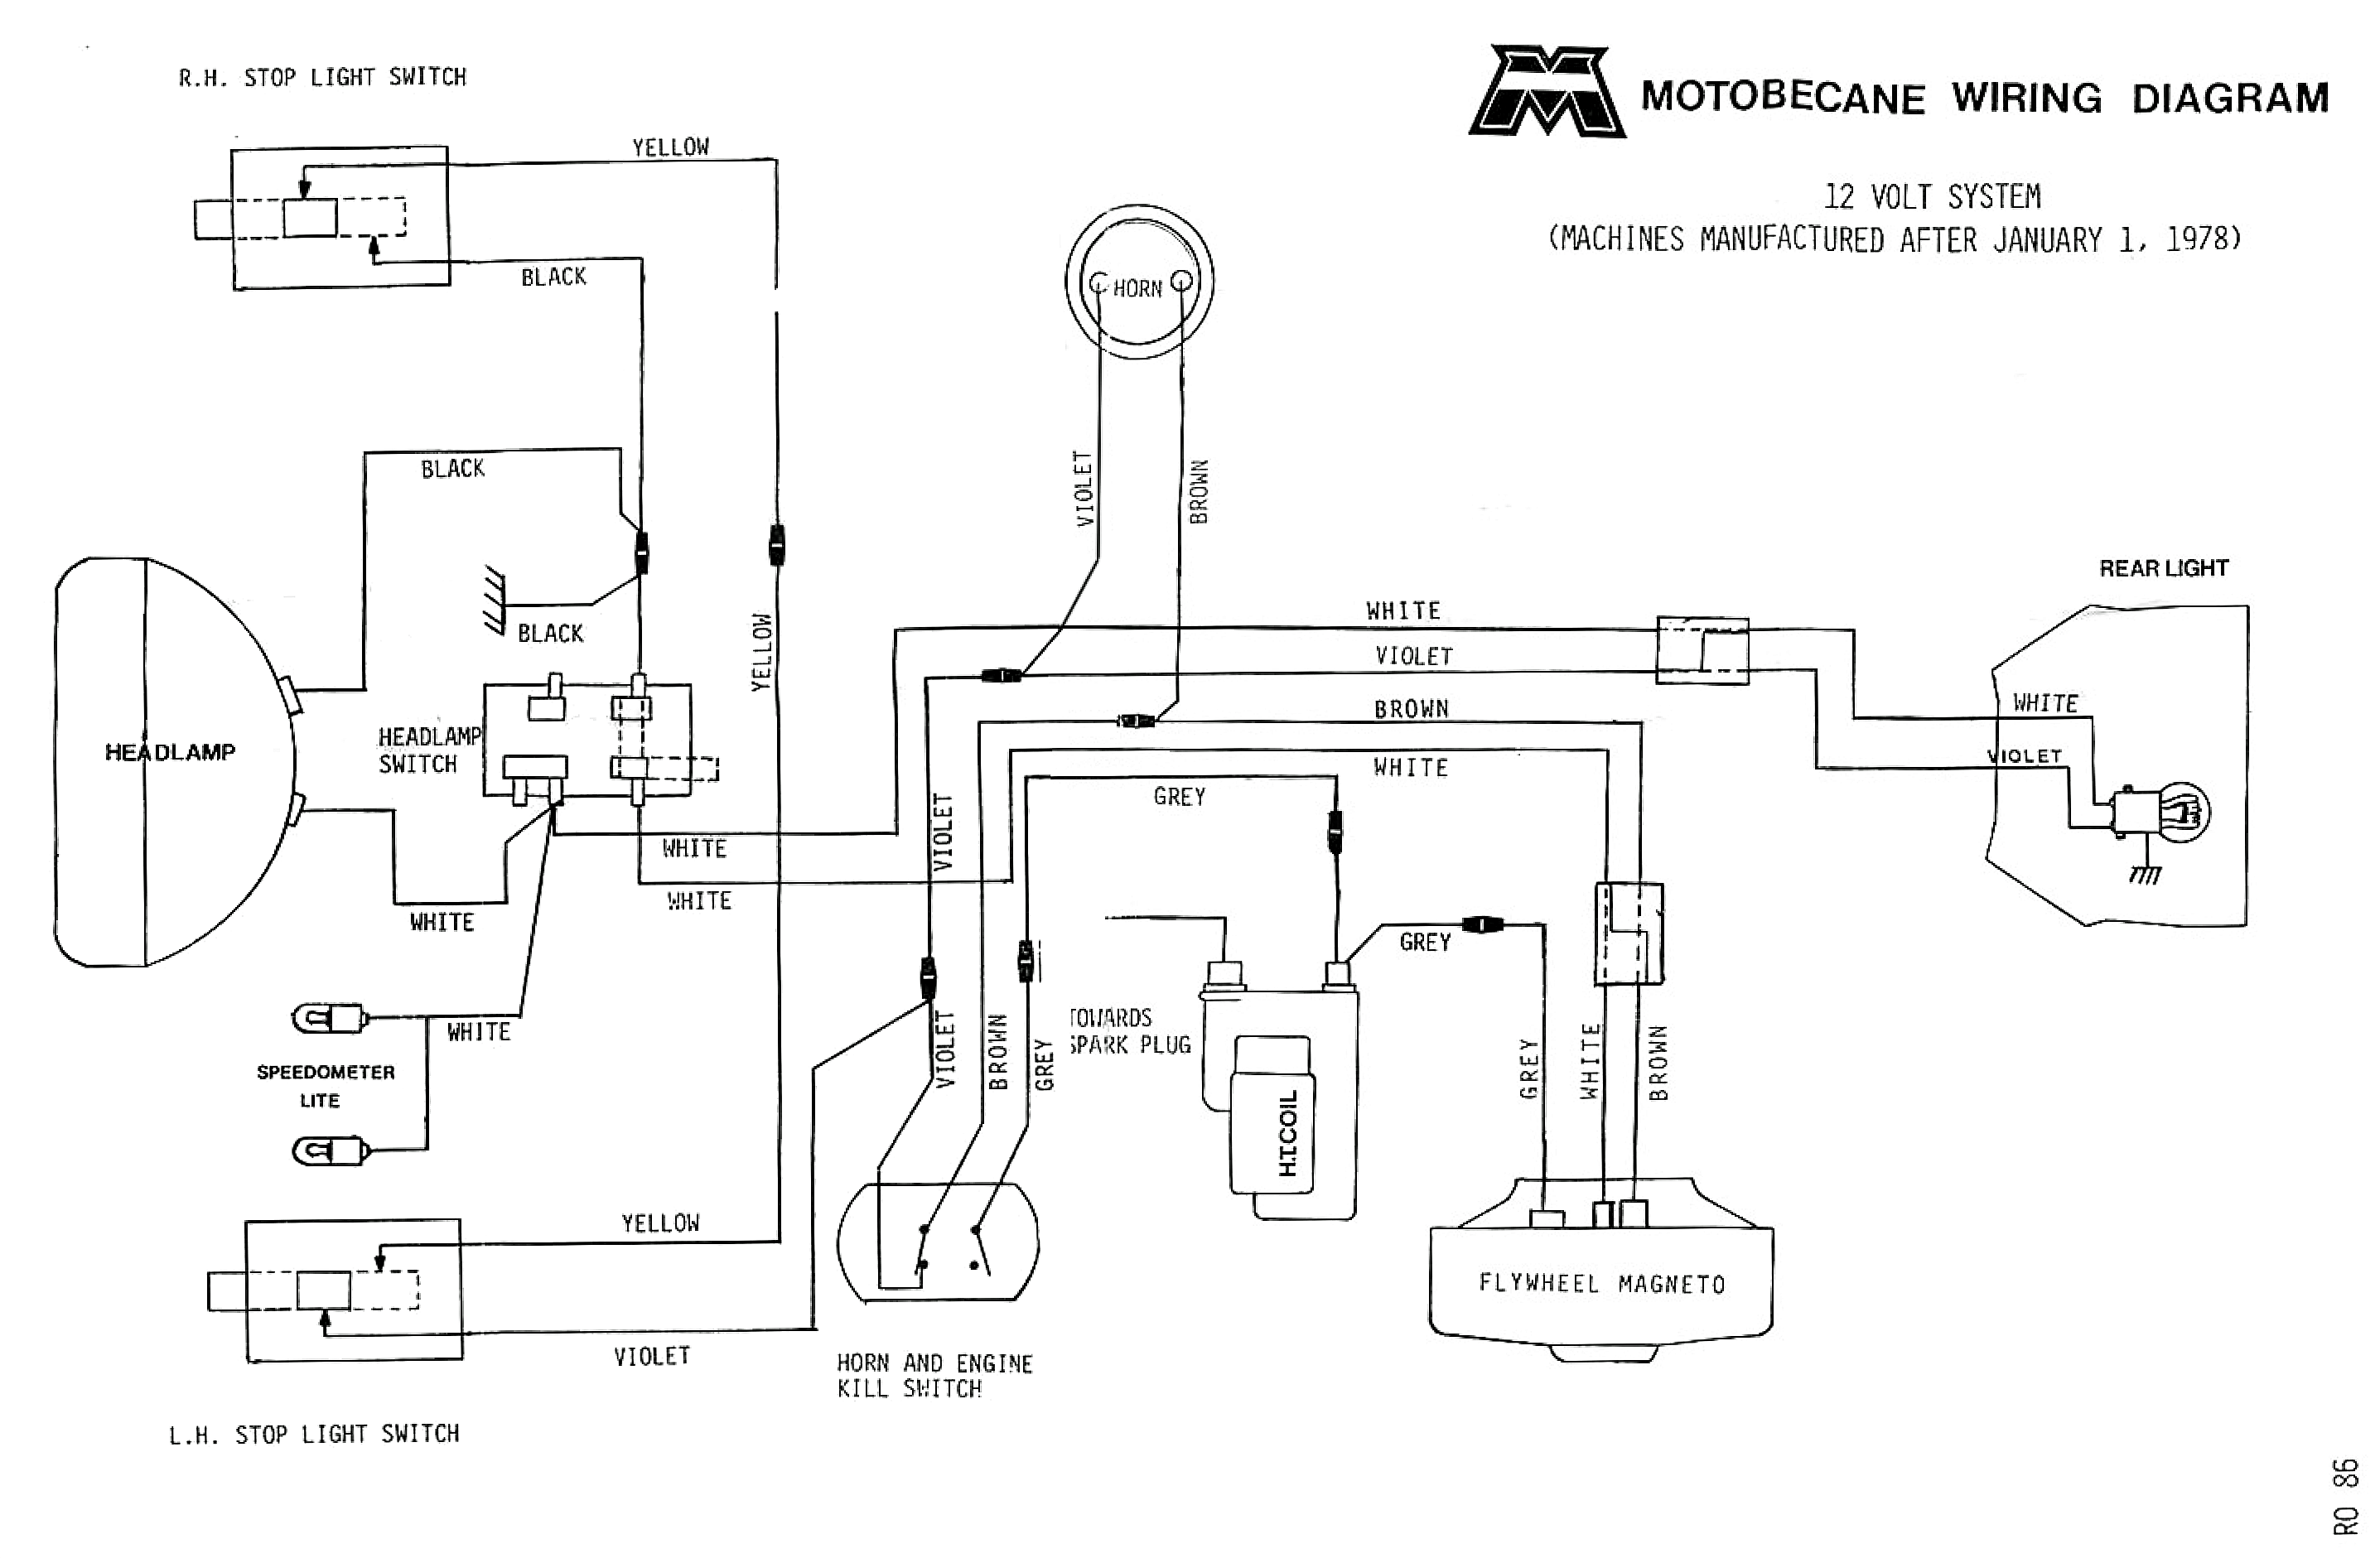 motobecane wiring diagrams moped wiki. Black Bedroom Furniture Sets. Home Design Ideas